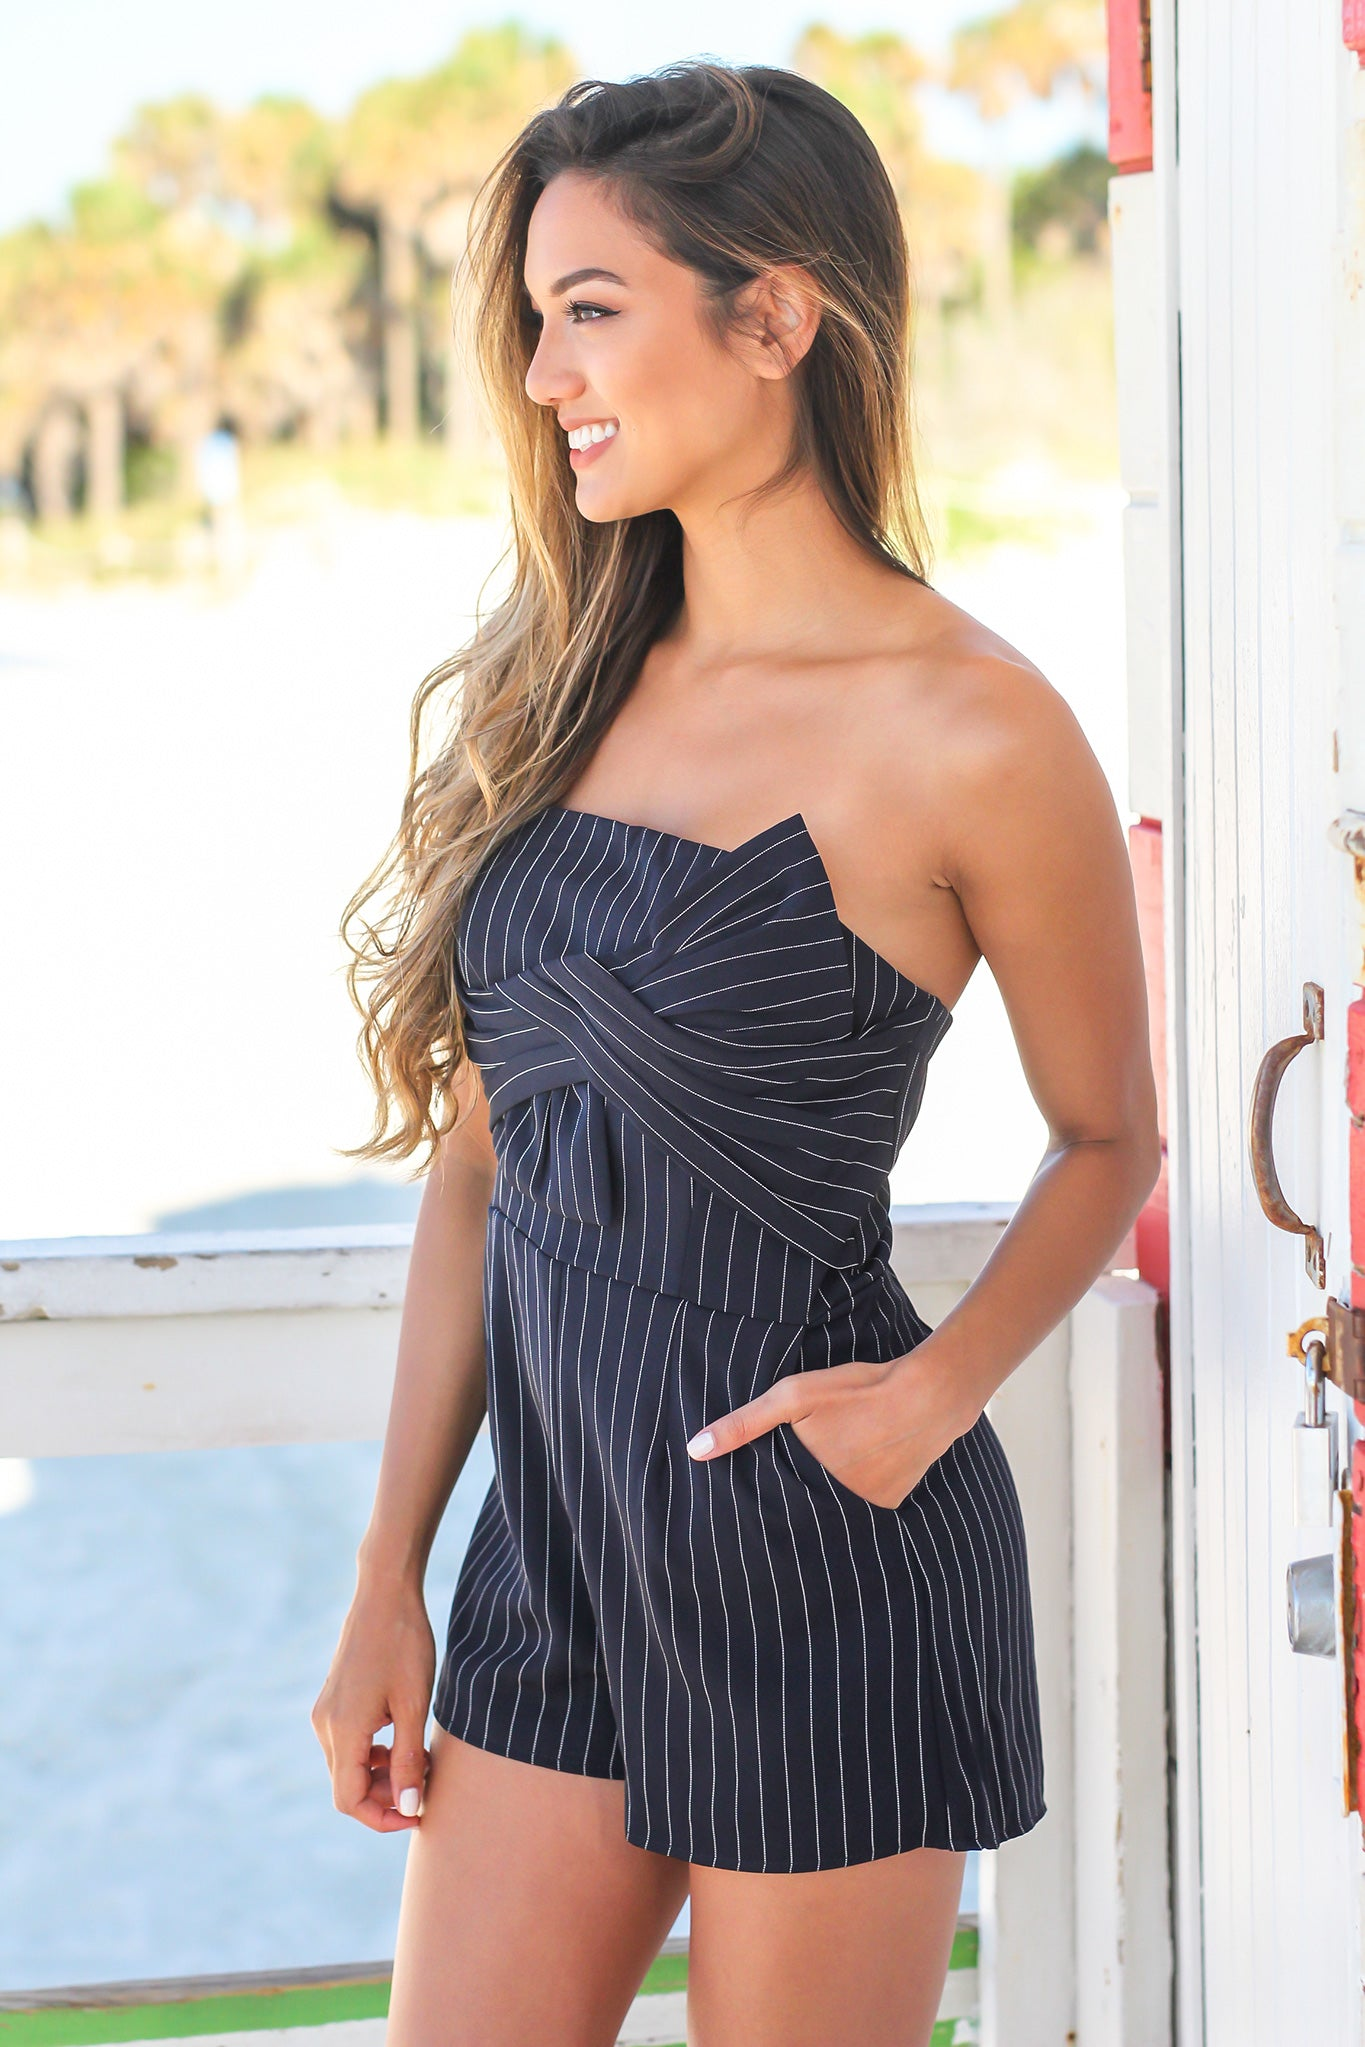 cb4c7195553 Navy and White Striped Strapless Romper